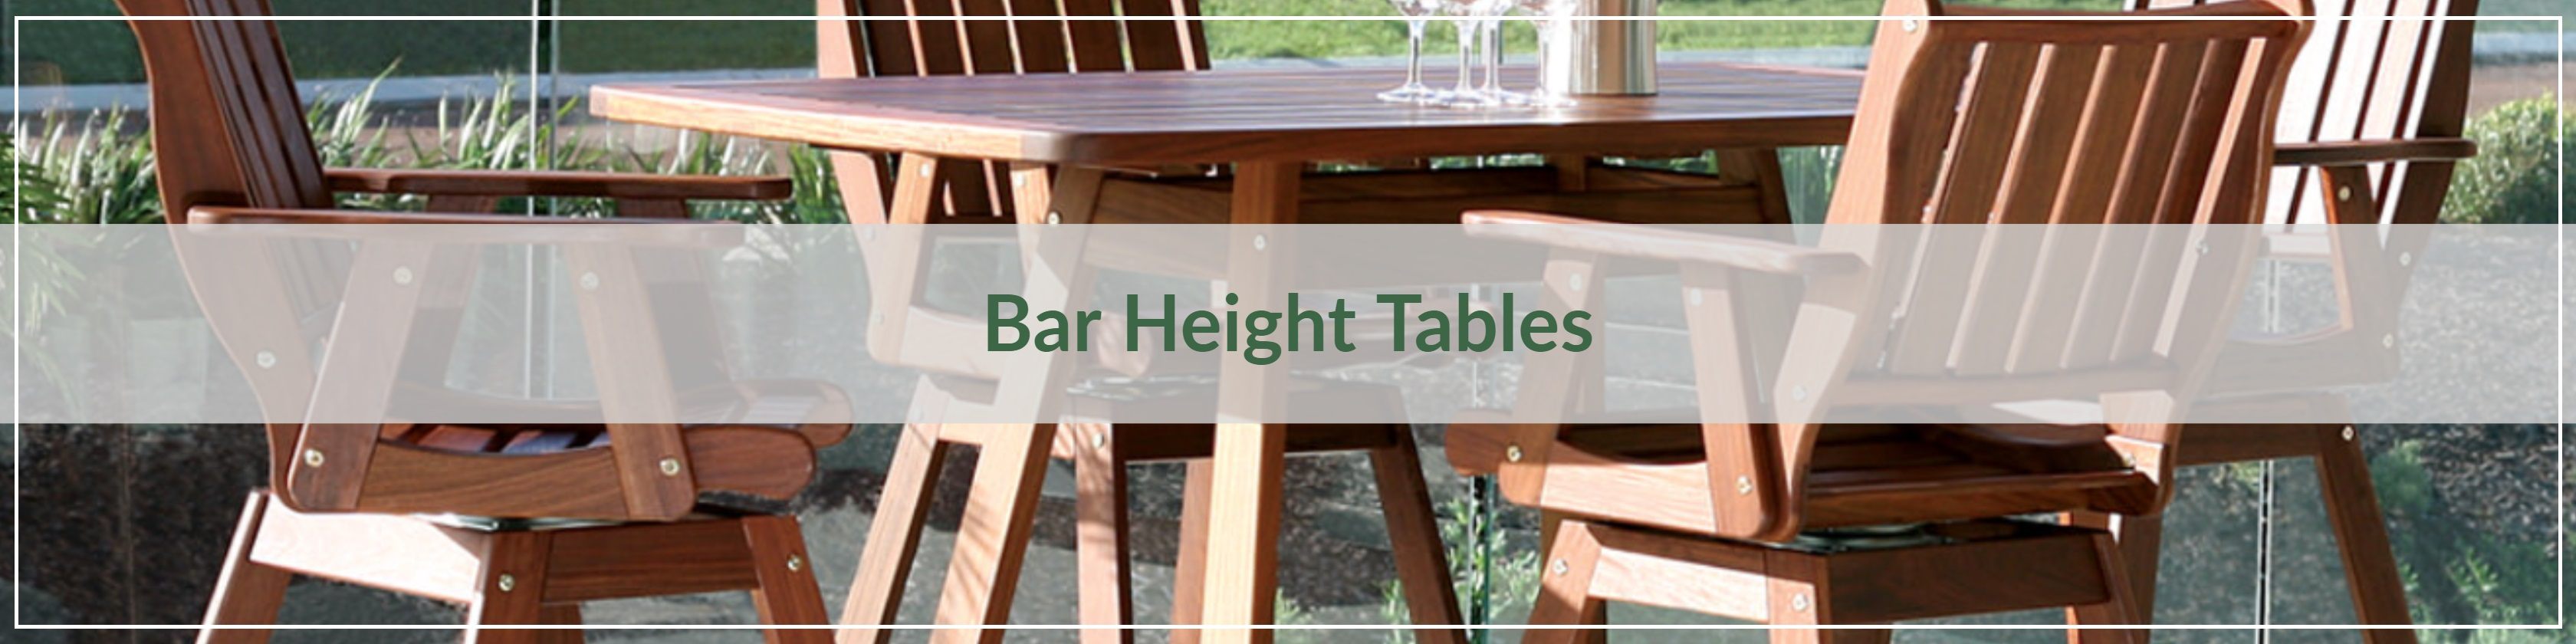 Outdoor Bar Height Tables